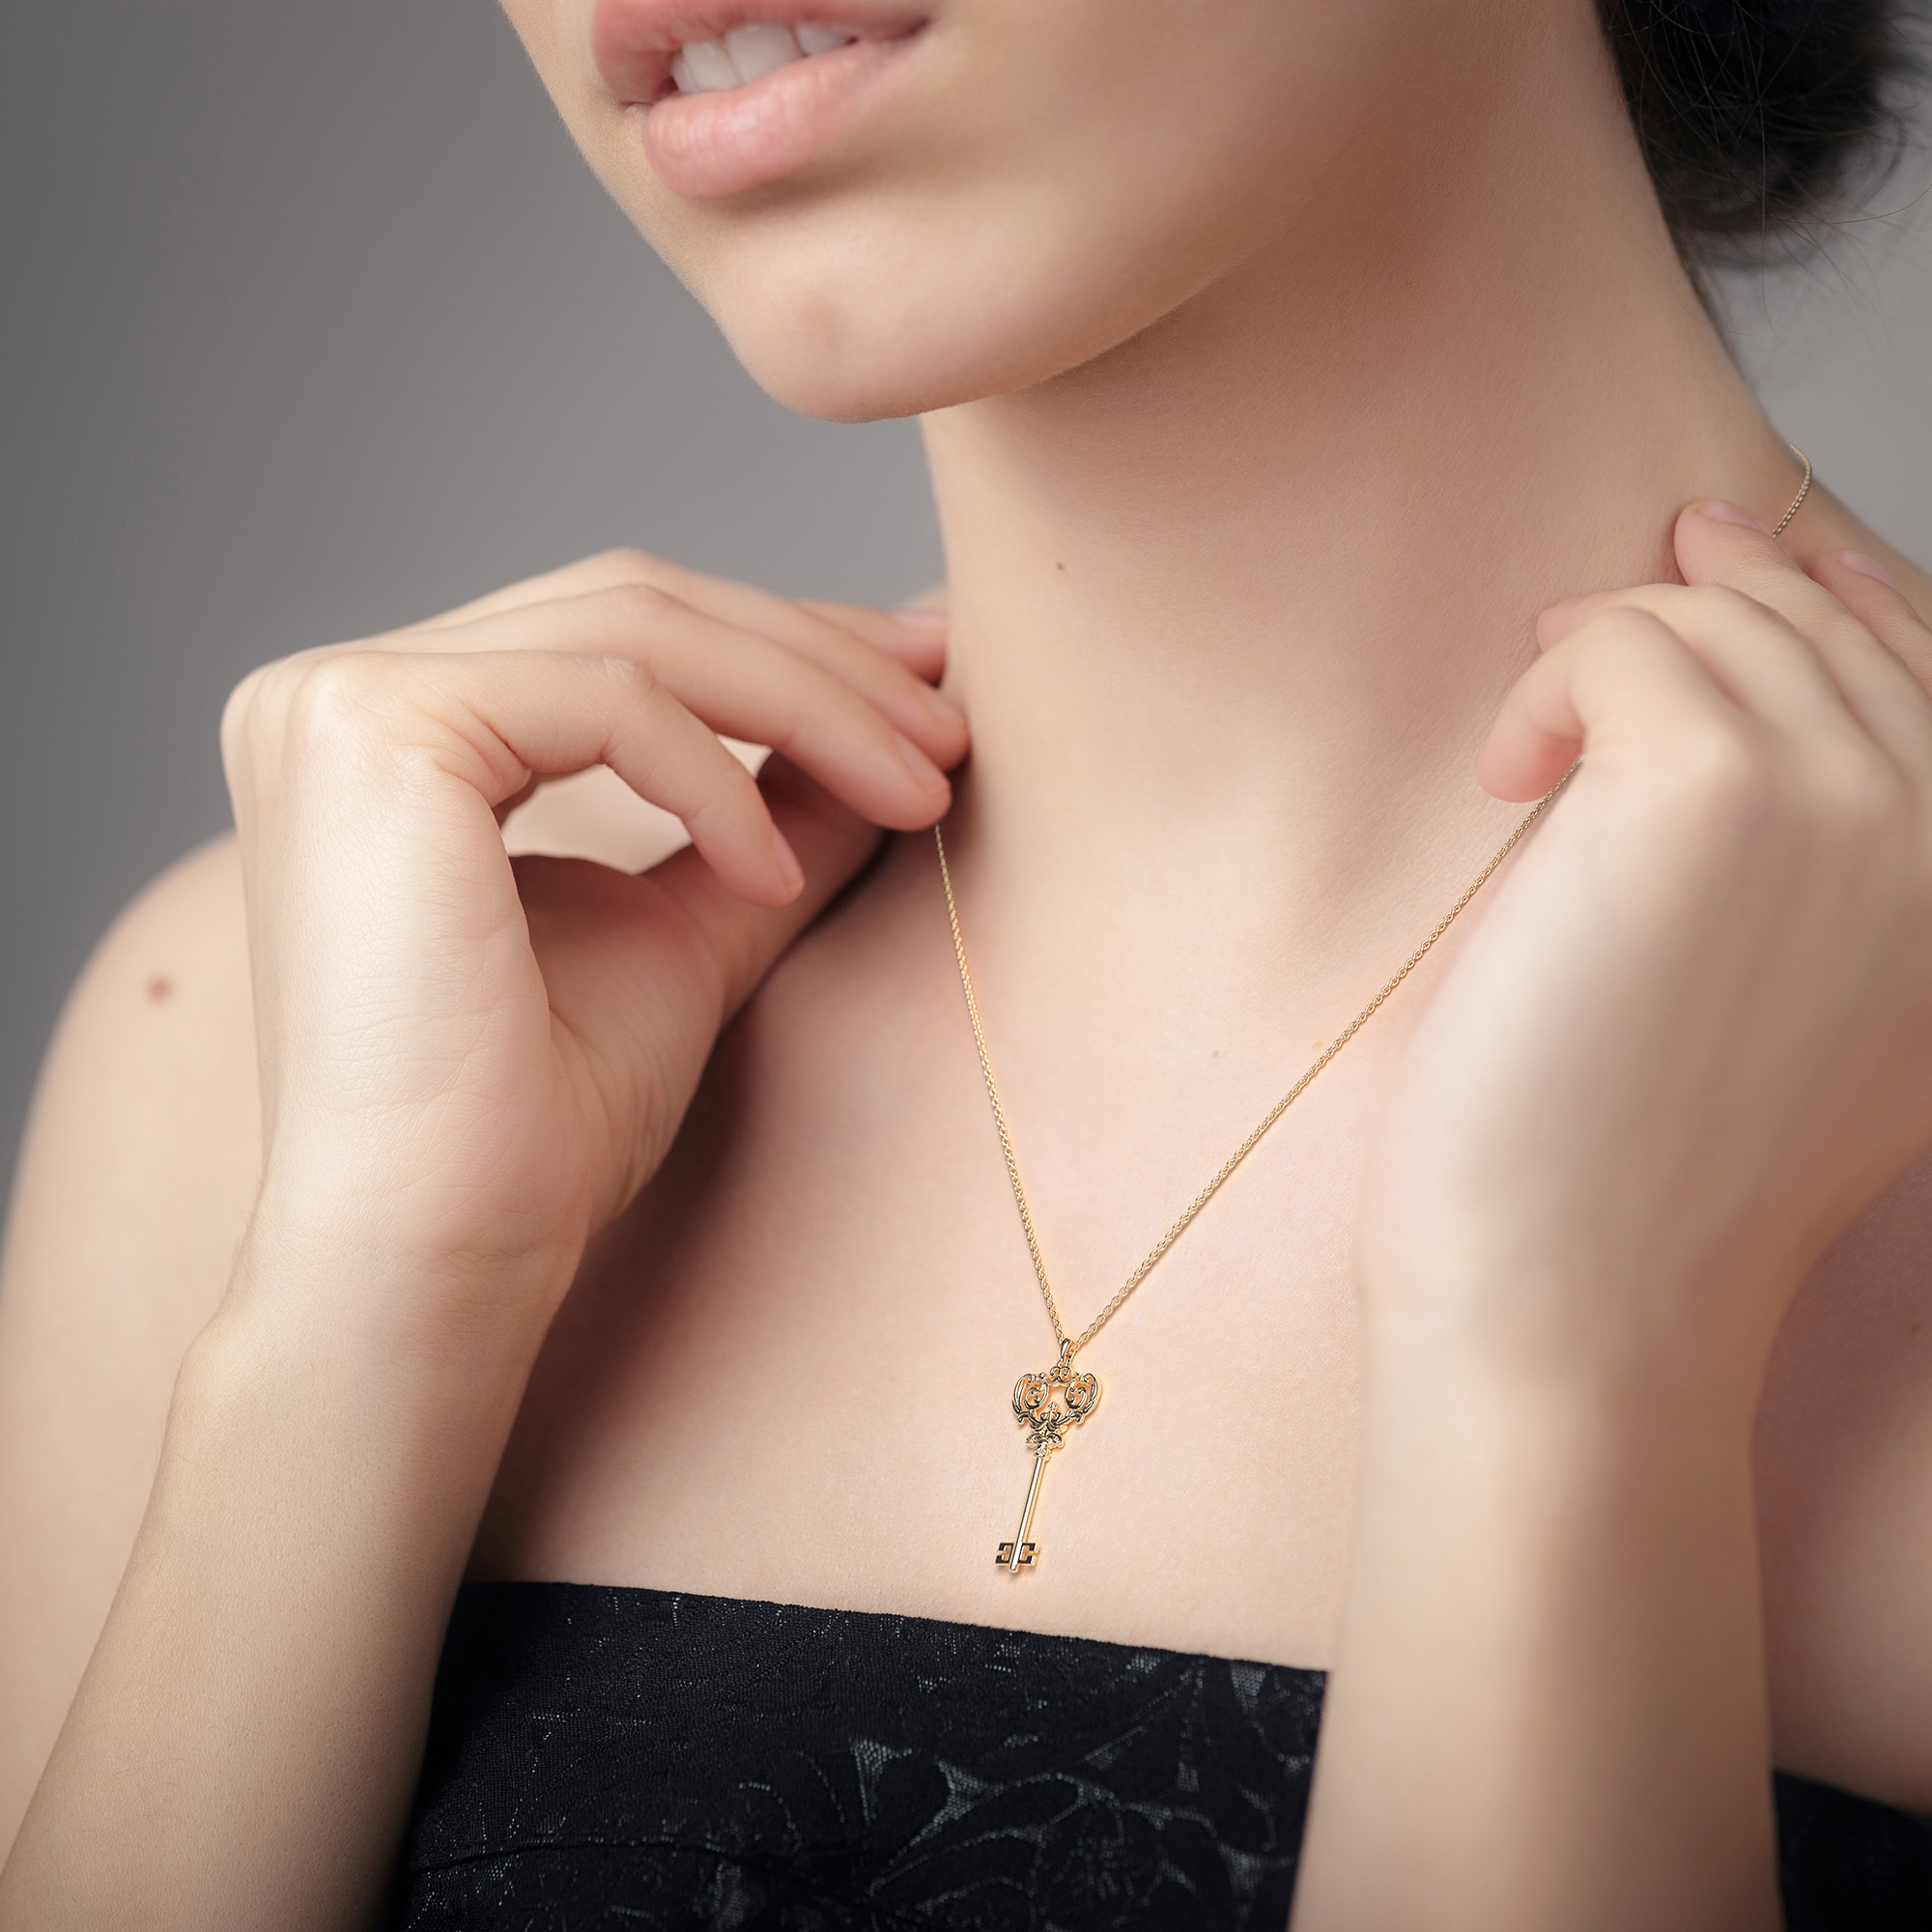 Necklace Key Pendant Anniversary Gift Womens Necklace Engagement Gift Art Deco Inspired